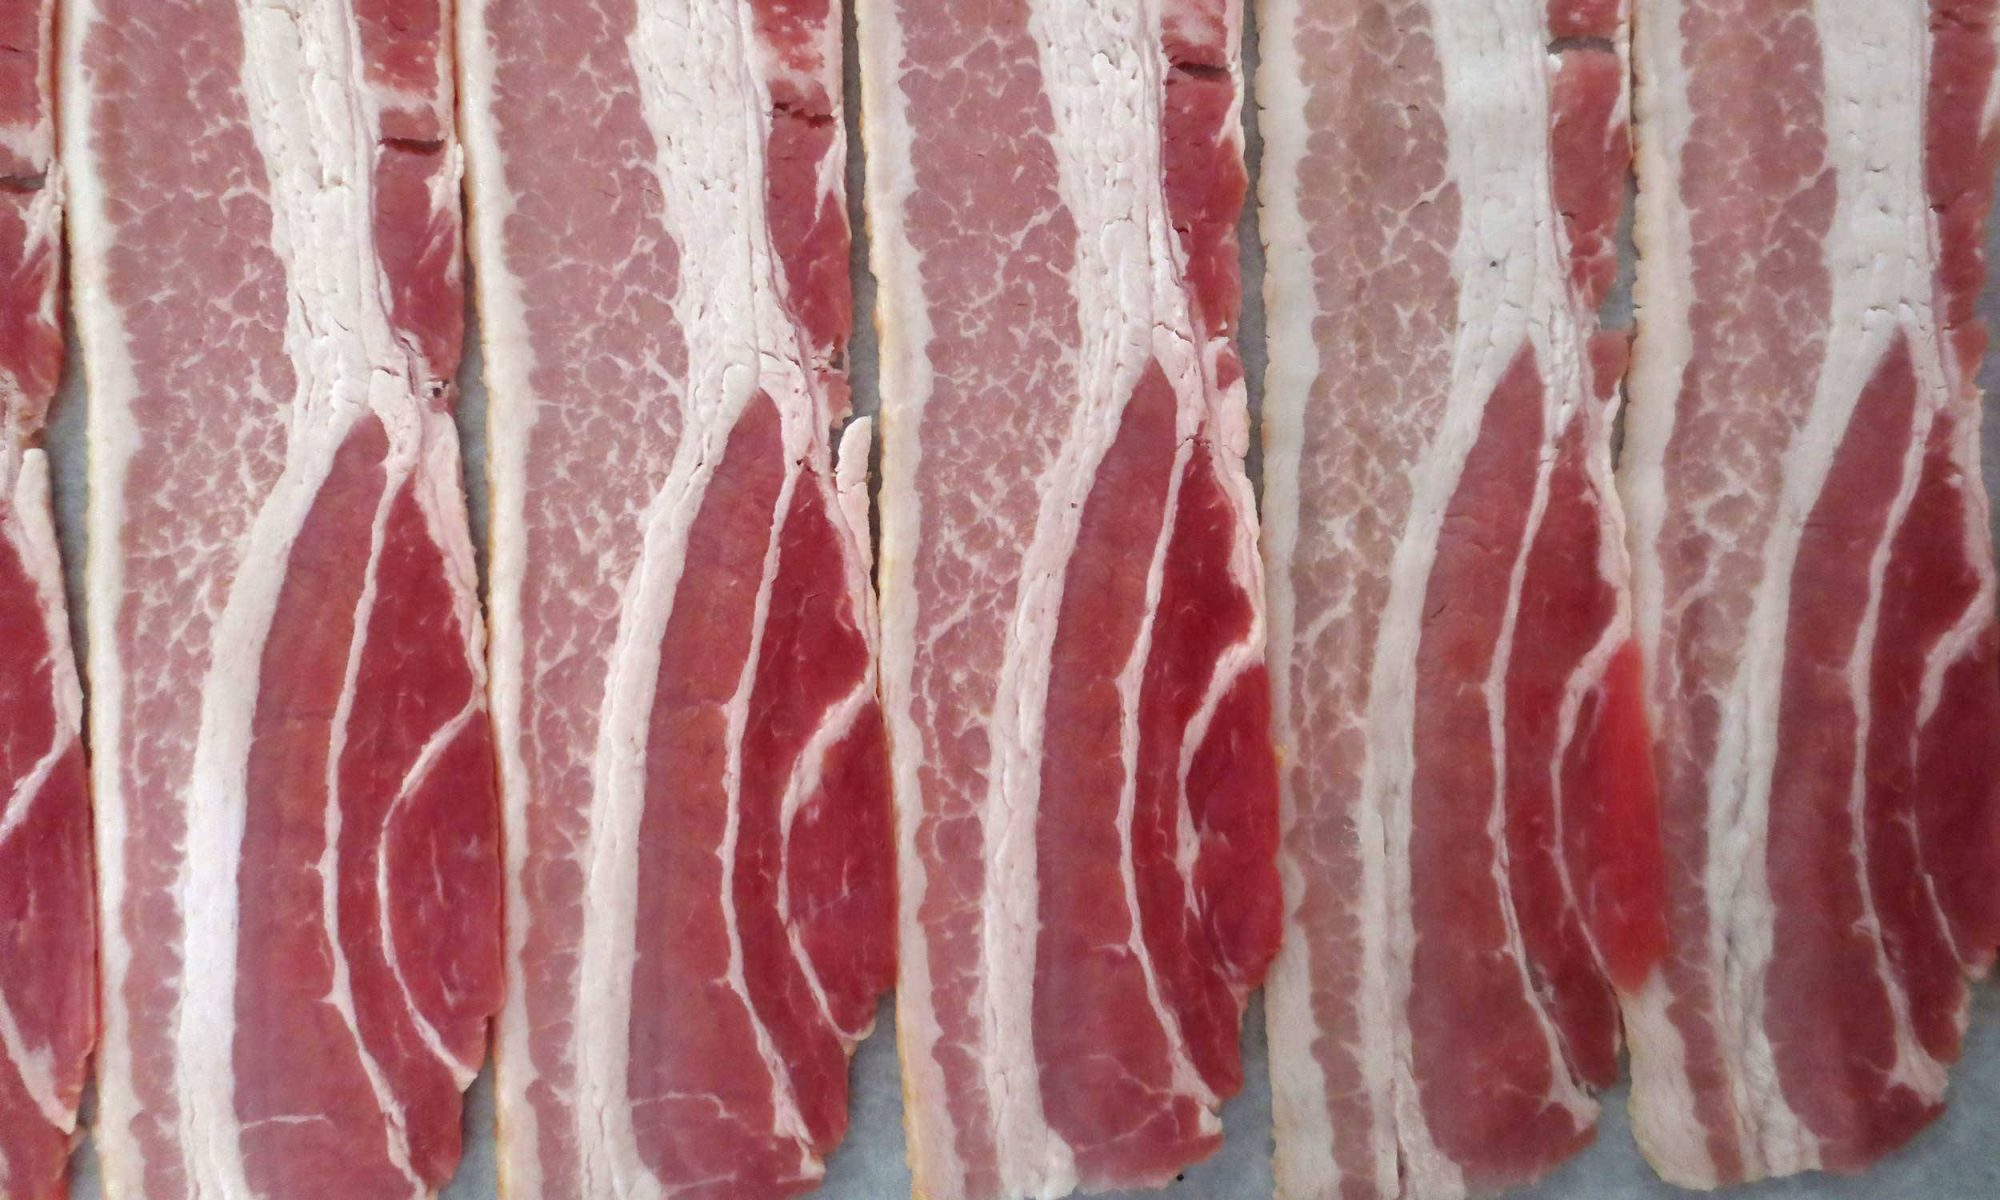 Is Raw Bacon Safe to Eat?